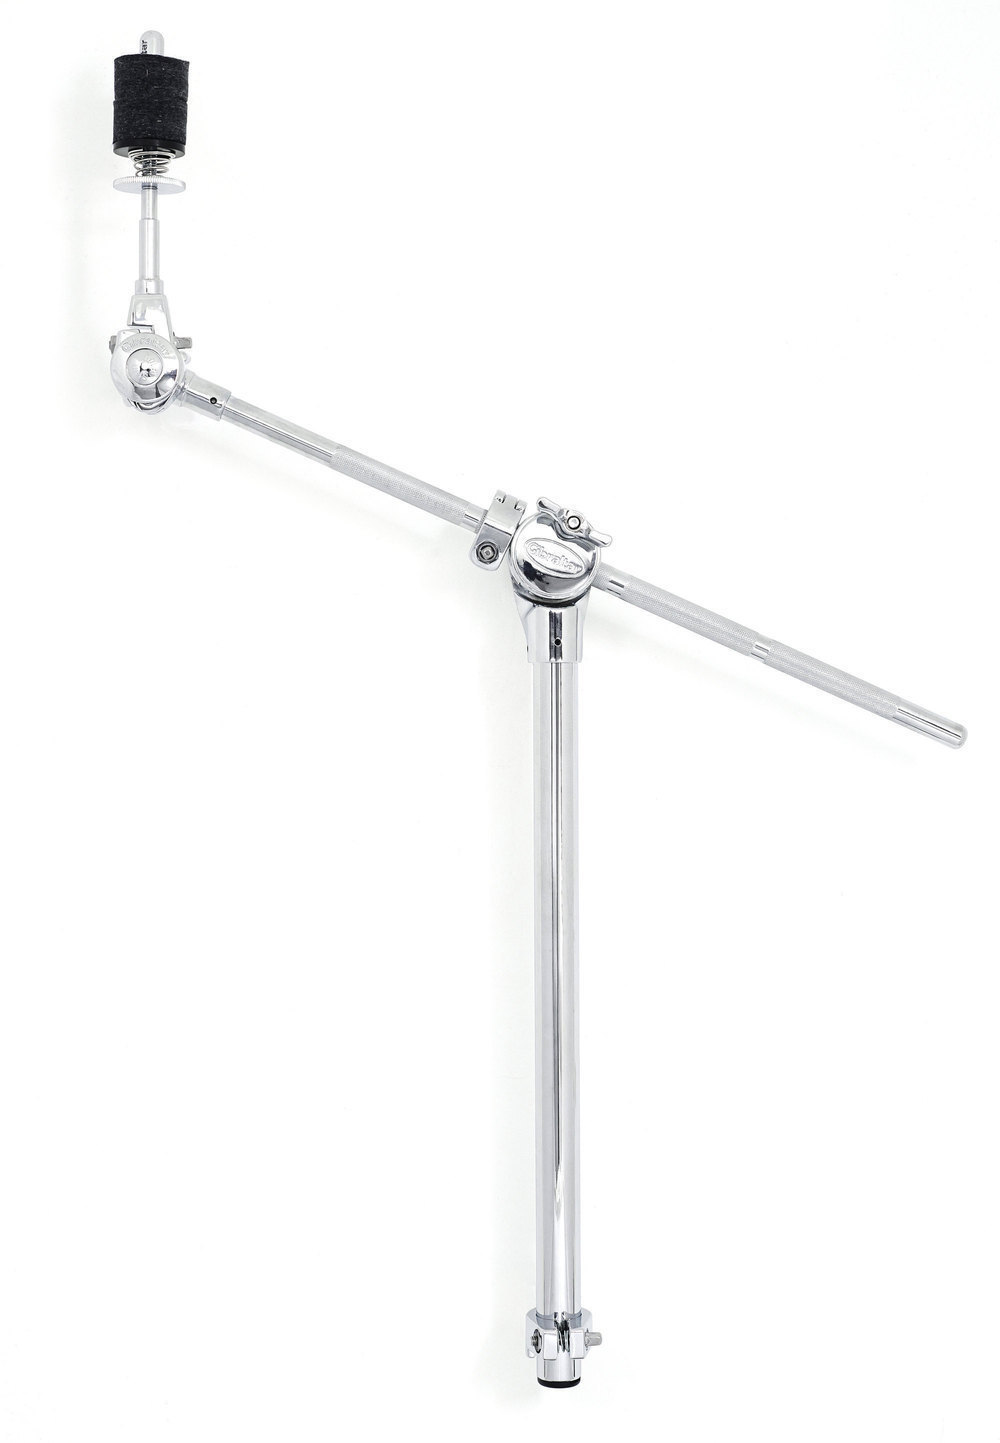 Image of   Gibraltar SC-LBBT-TP Cymbal arm/accessory Long cymbal boom arm